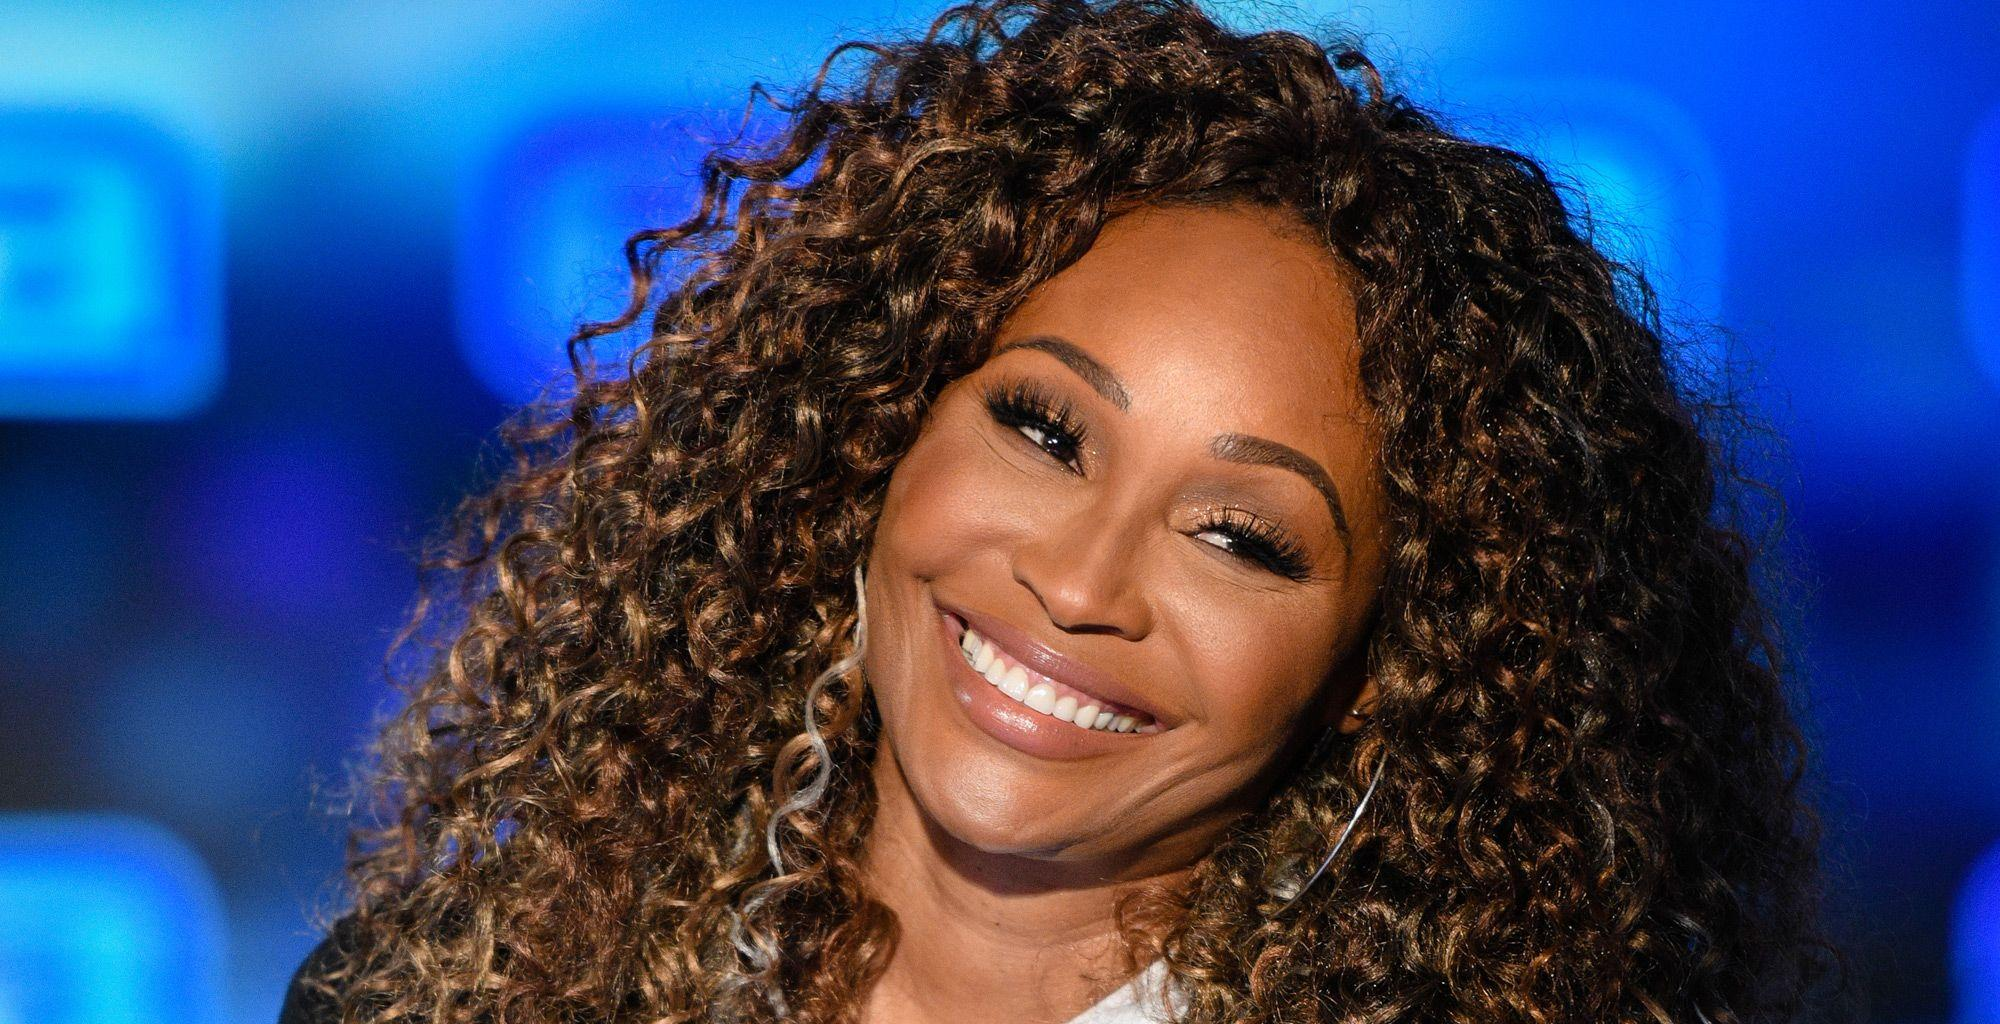 Cynthia Bailey Reveals She Found Peace - Check Out Her Message